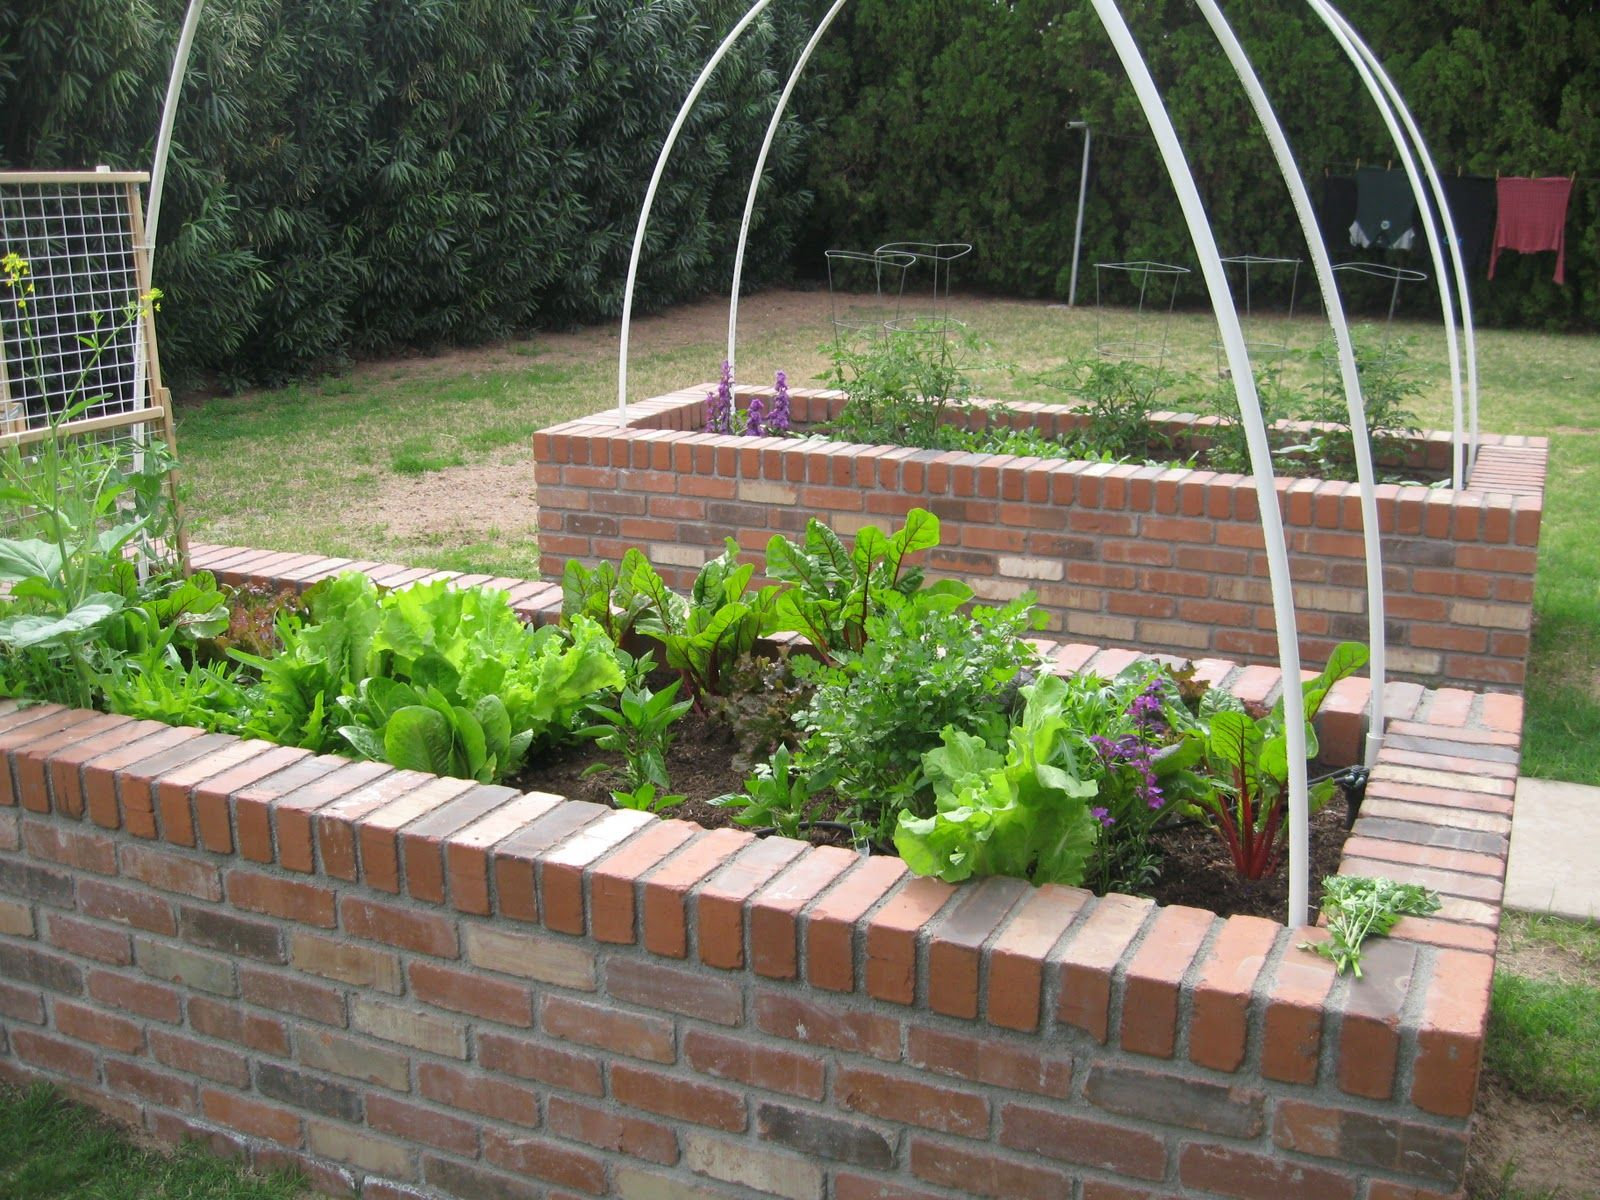 Brick raised bed vegetable garden garden pinterest for Raised vegetable garden bed designs